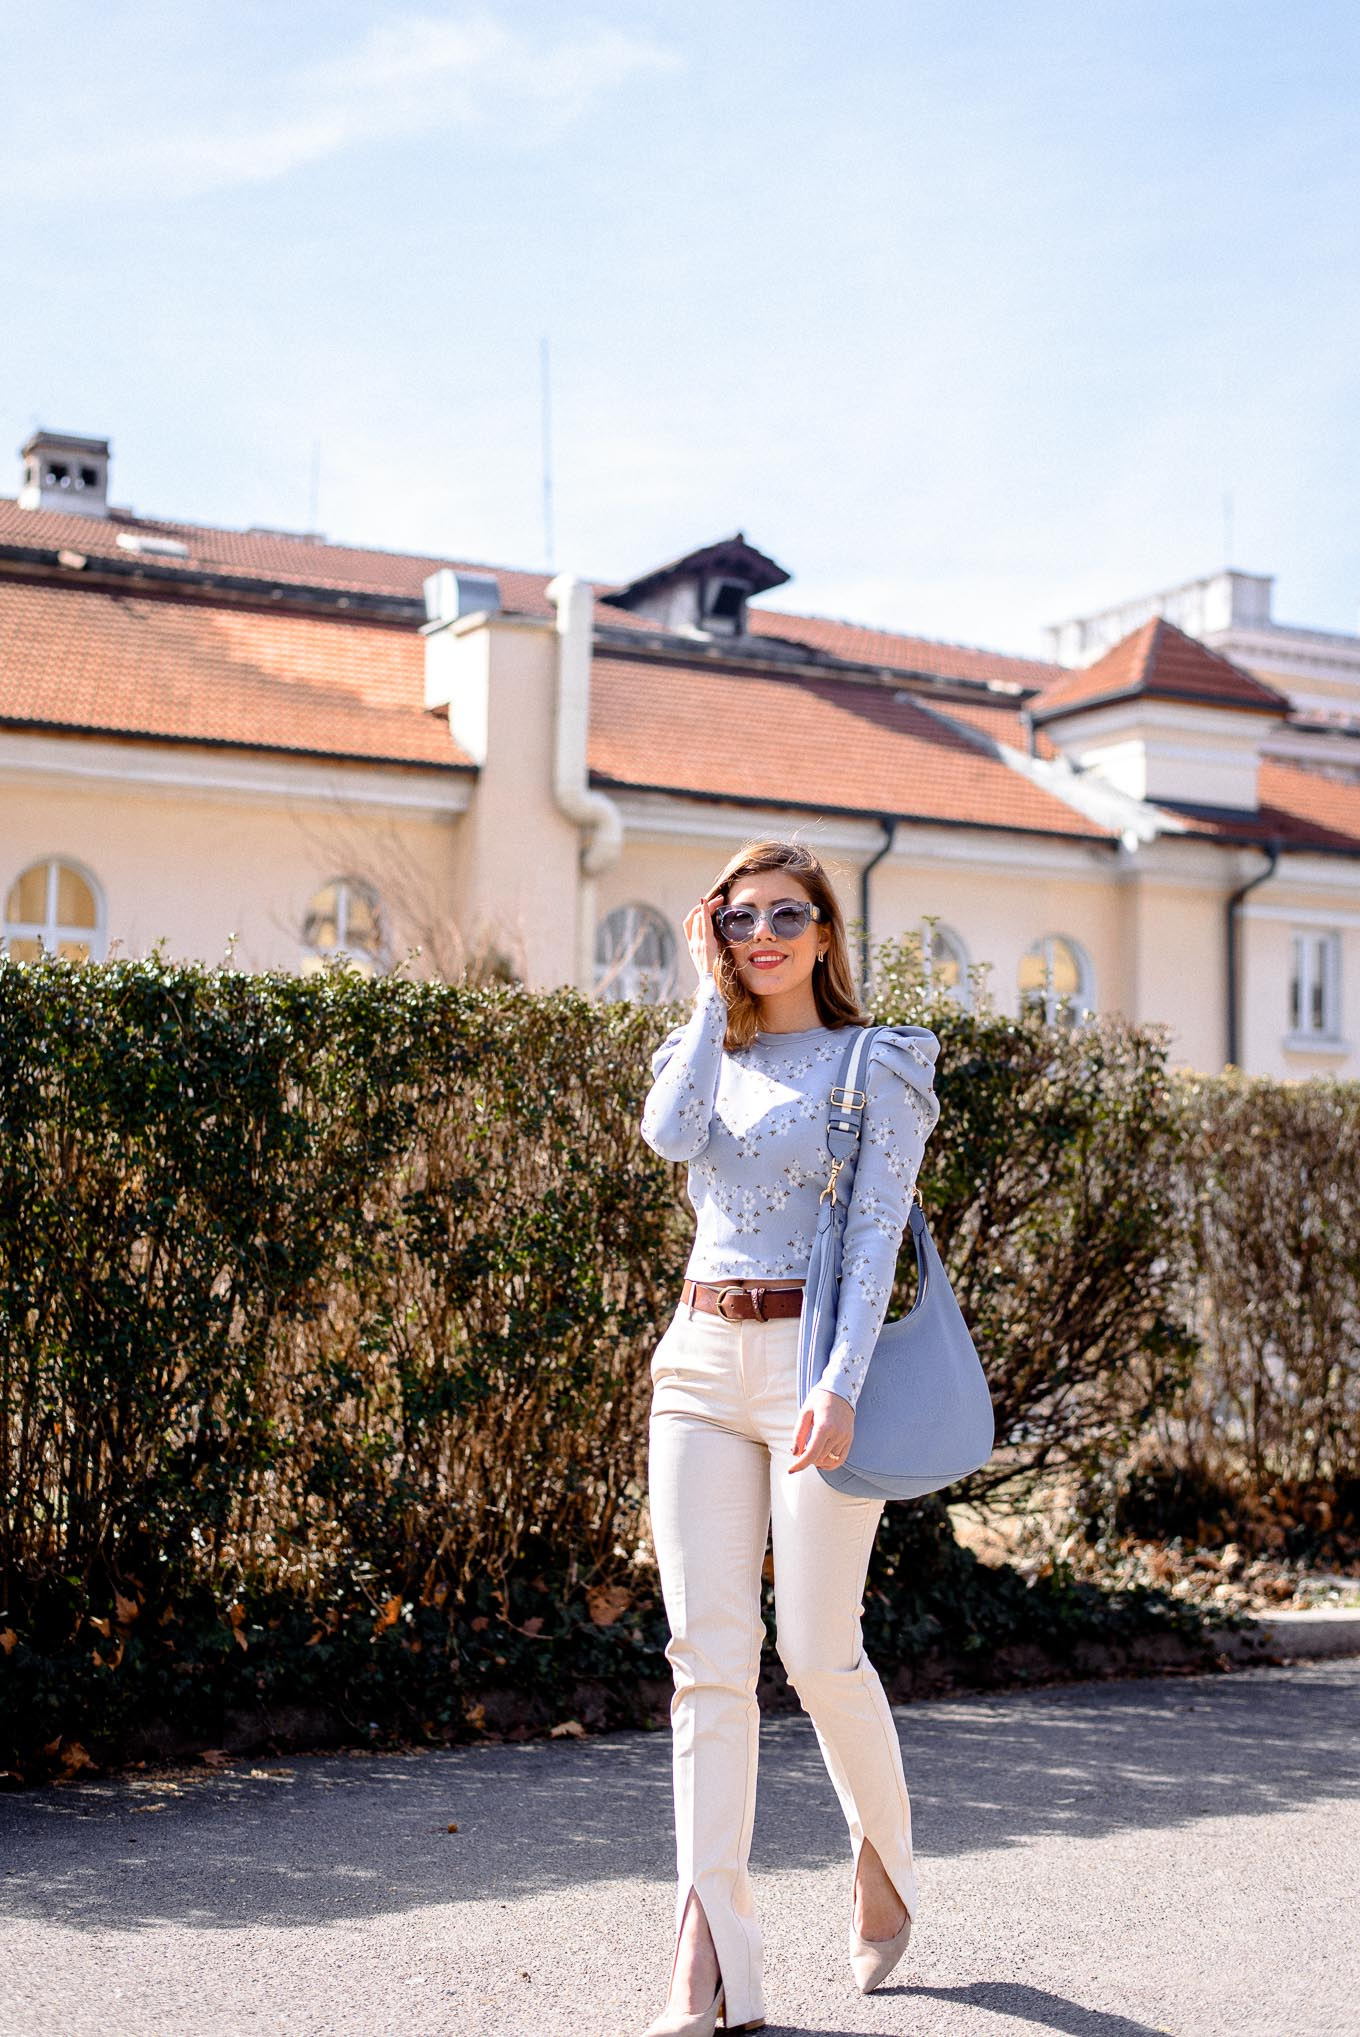 Bulgarian style and fashion blogger wearing Zara